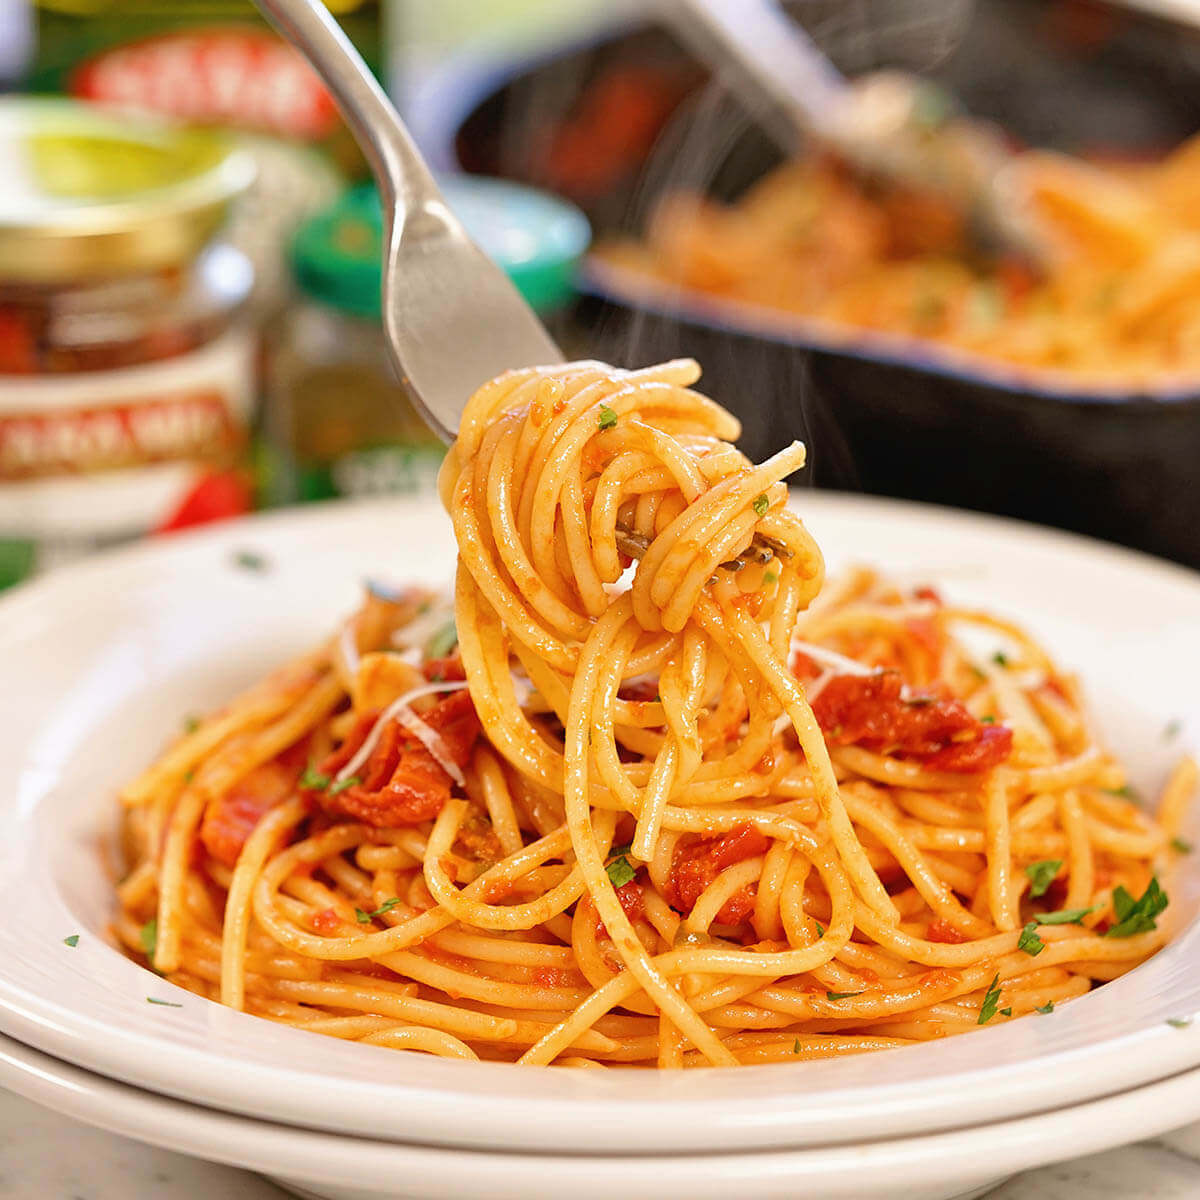 Pasta in white bowl, twirled with a fork